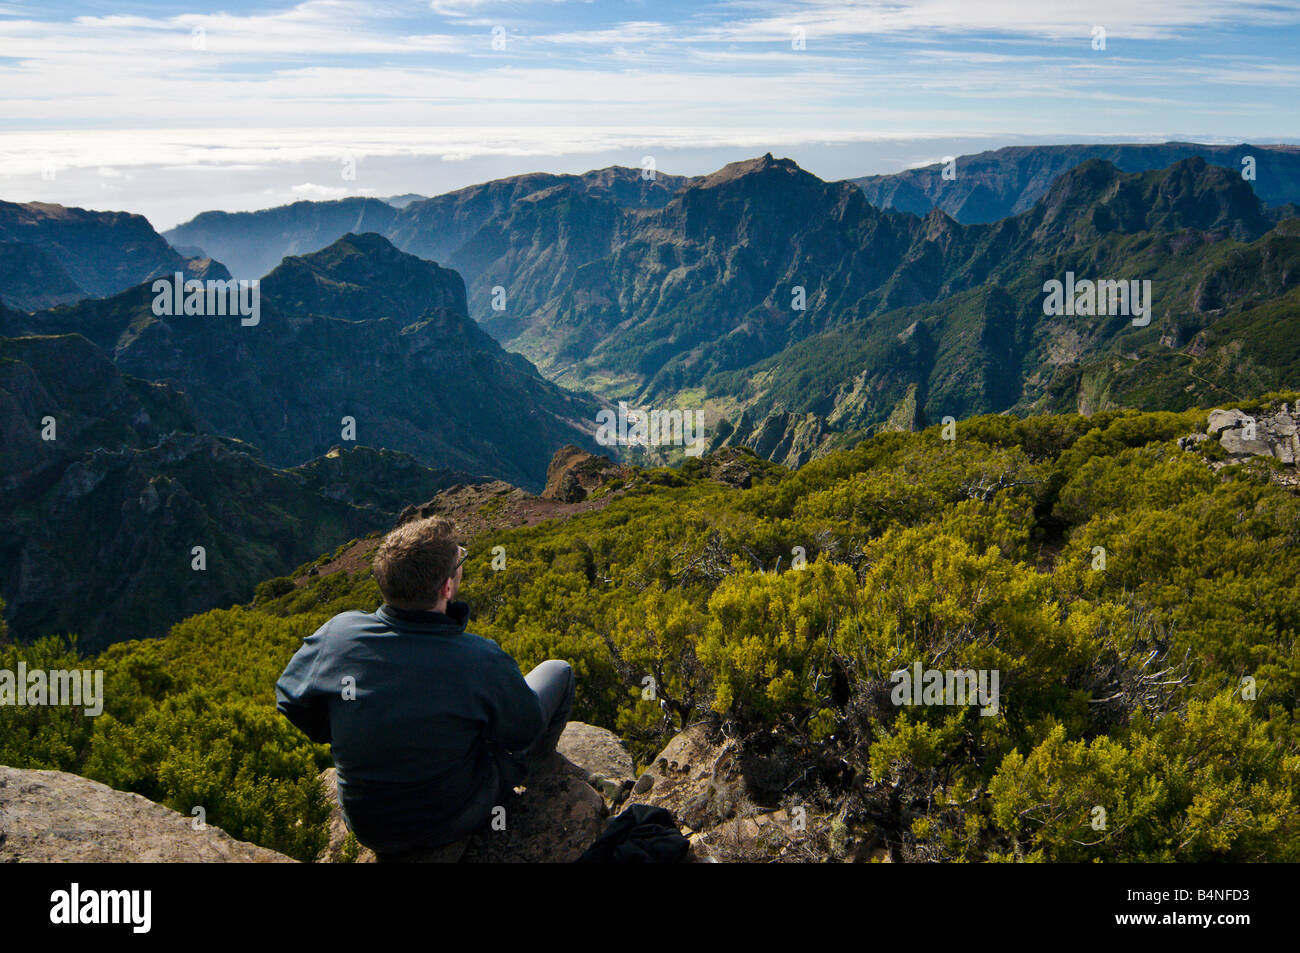 Walker surveys the view from Pico Ruivo Madeira s highest summit with Curral das Freiras far below - Stock Image